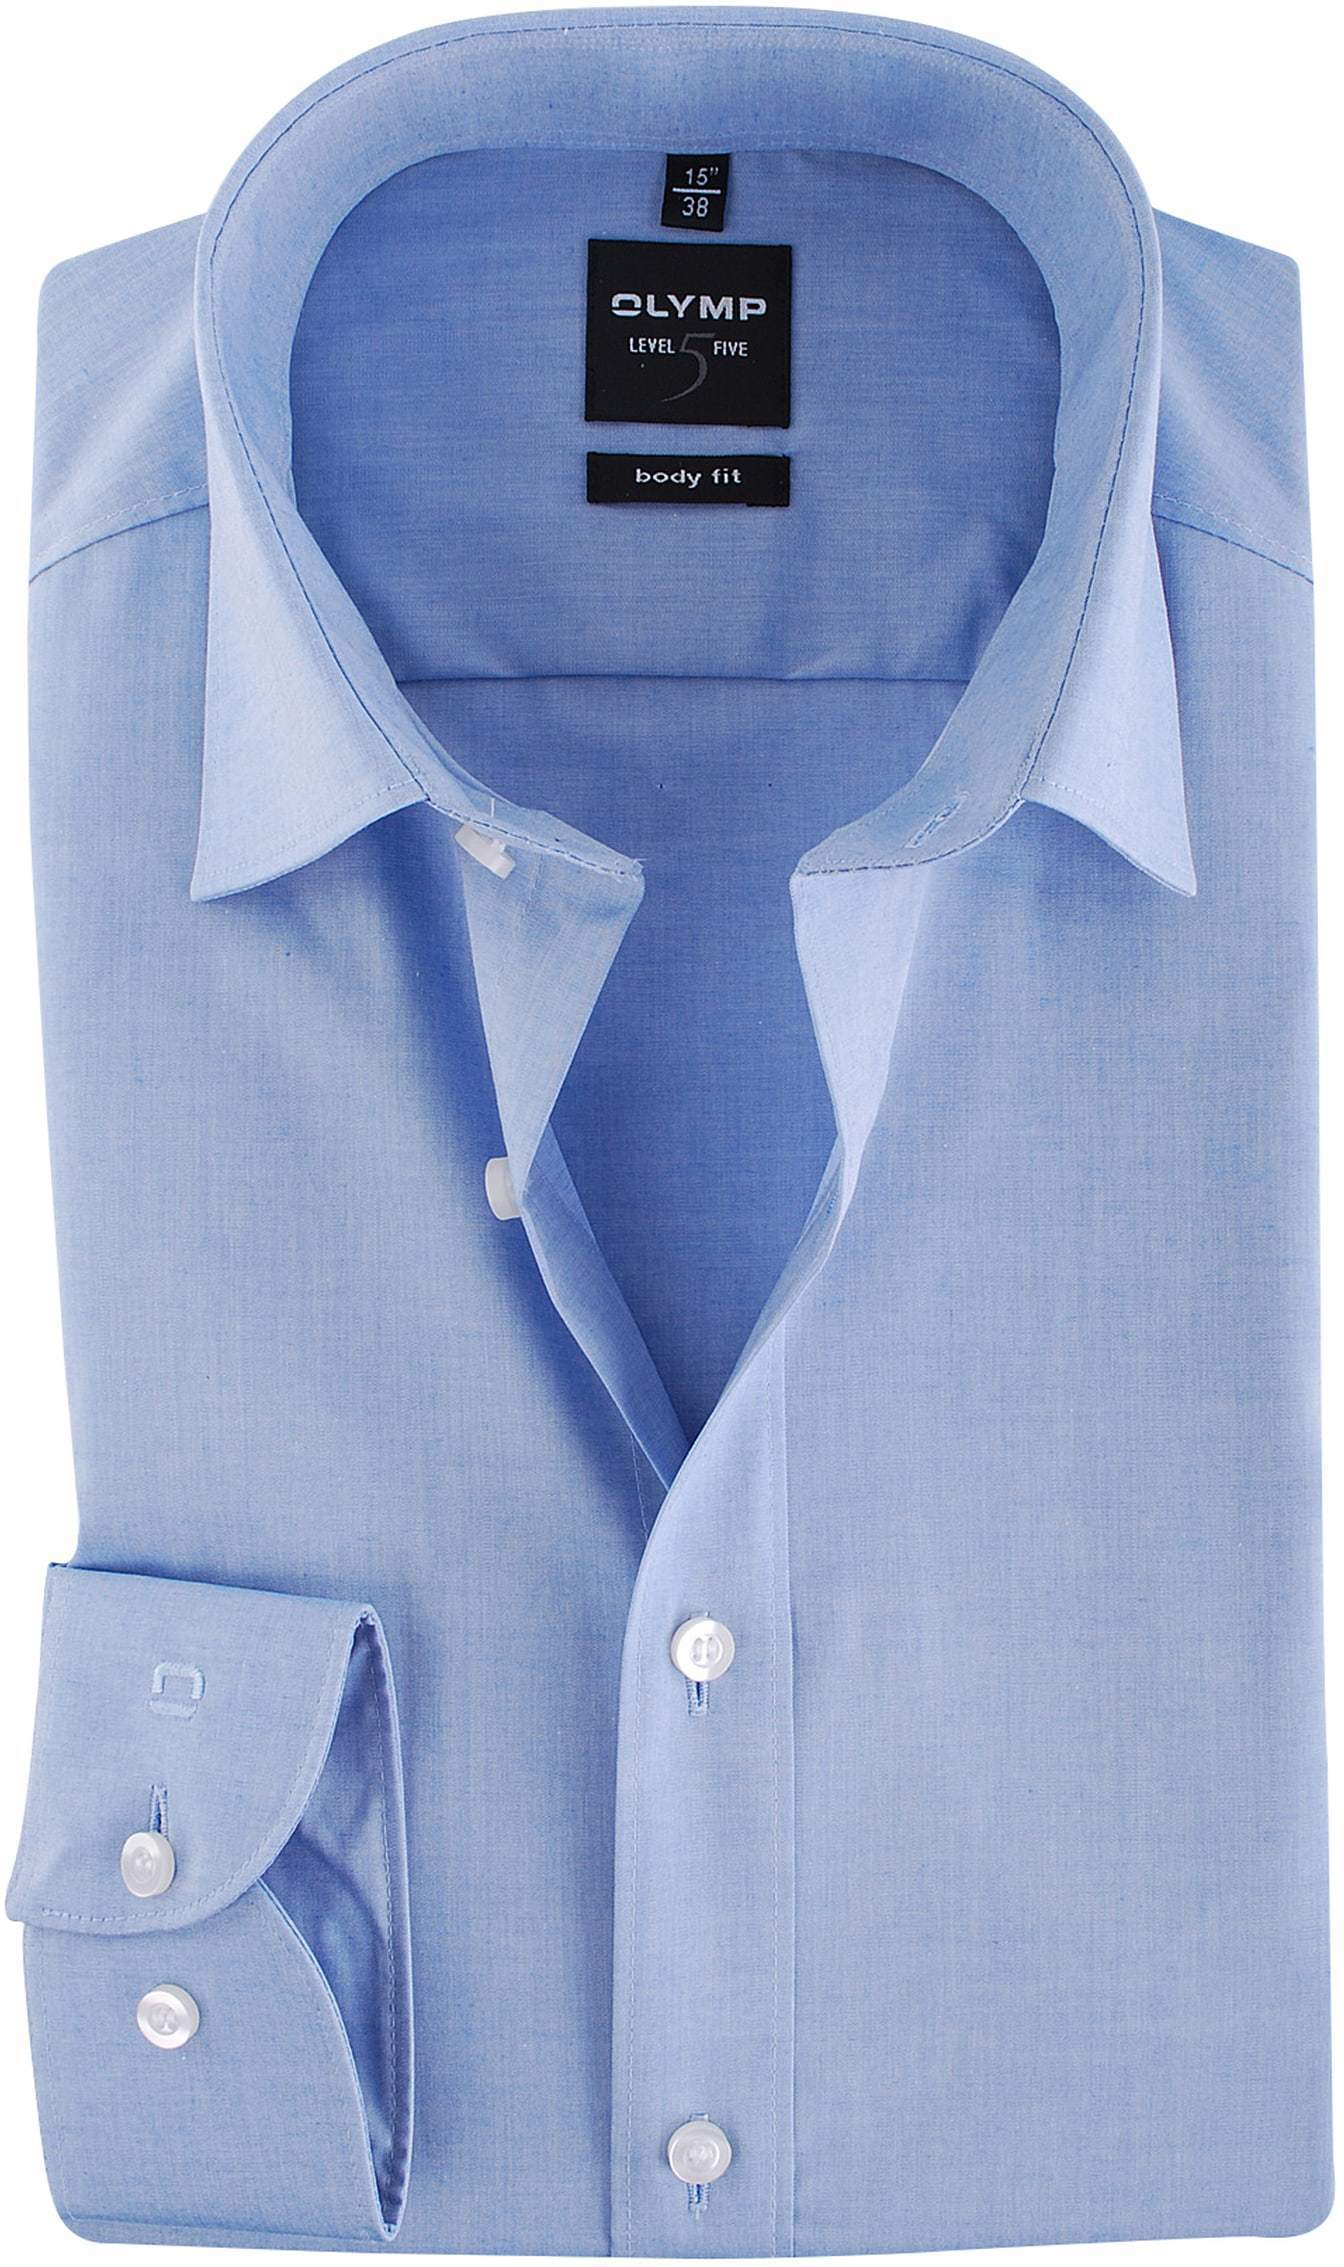 Olymp Level Five Shirt Body-Fit Blue